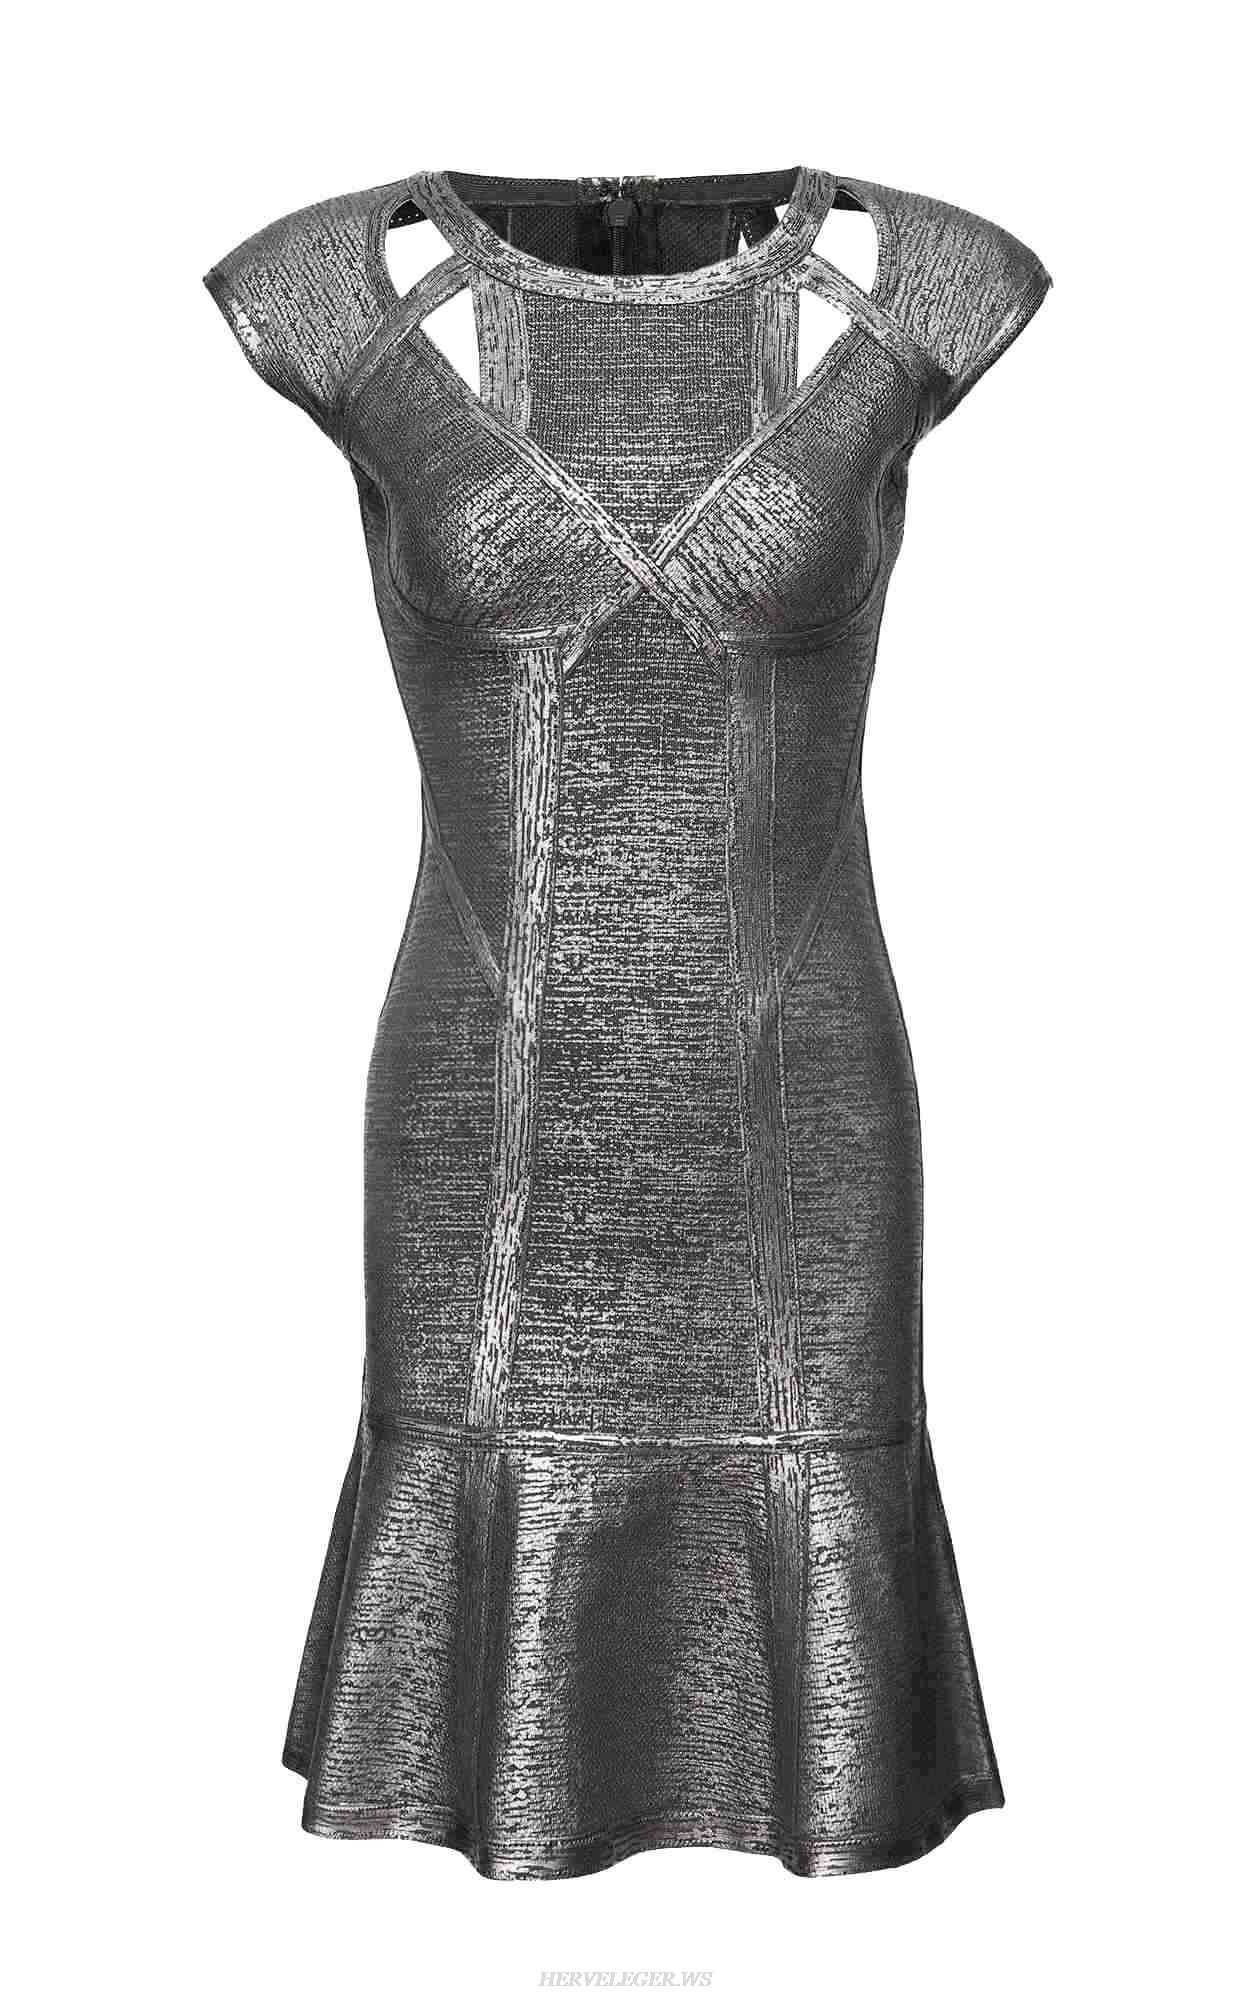 Herve Leger Ariana Foil Crochet Jacquard Dress